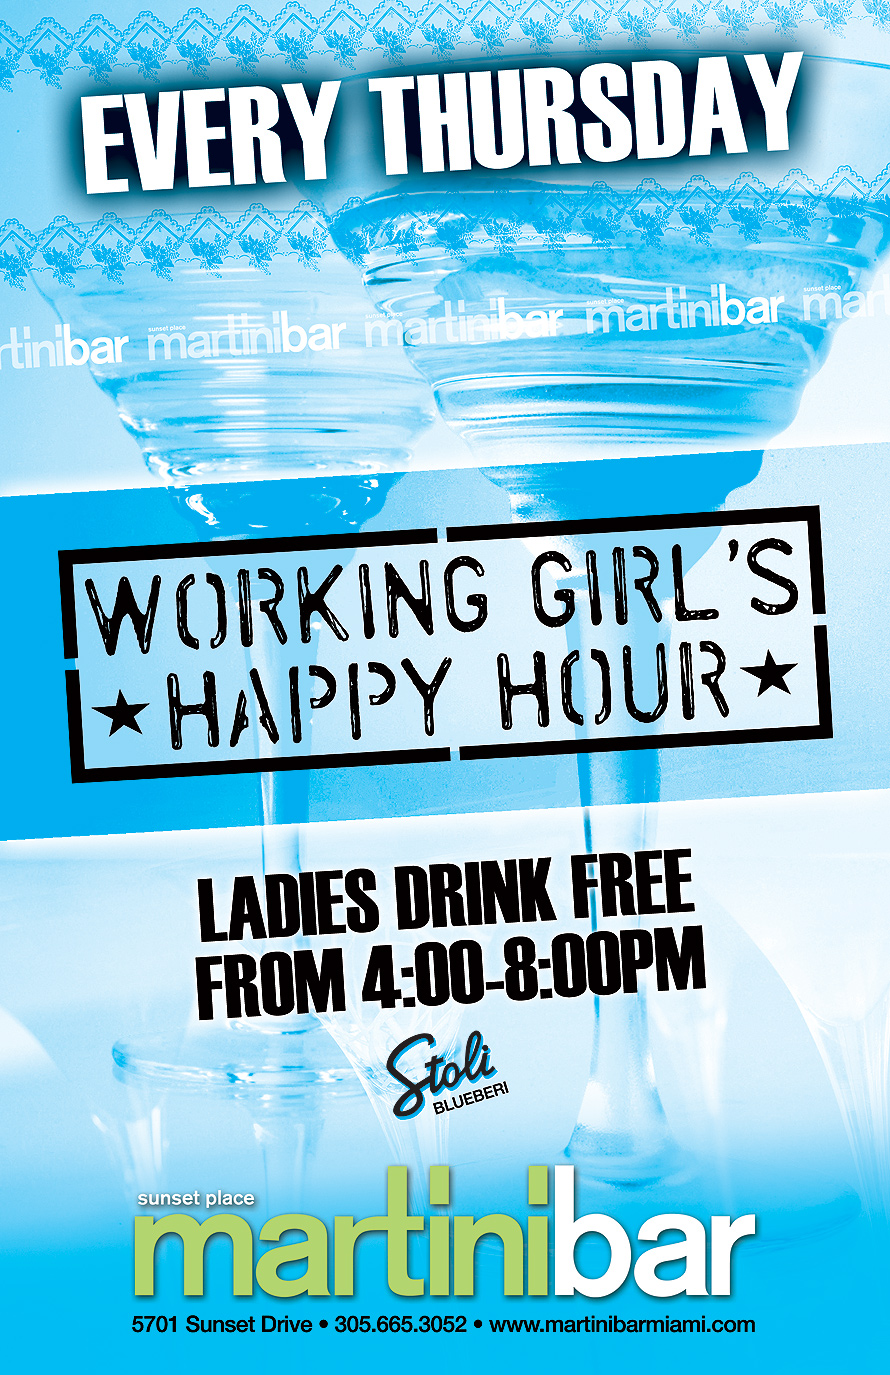 Working Girl's Happy Hour Martini Bar